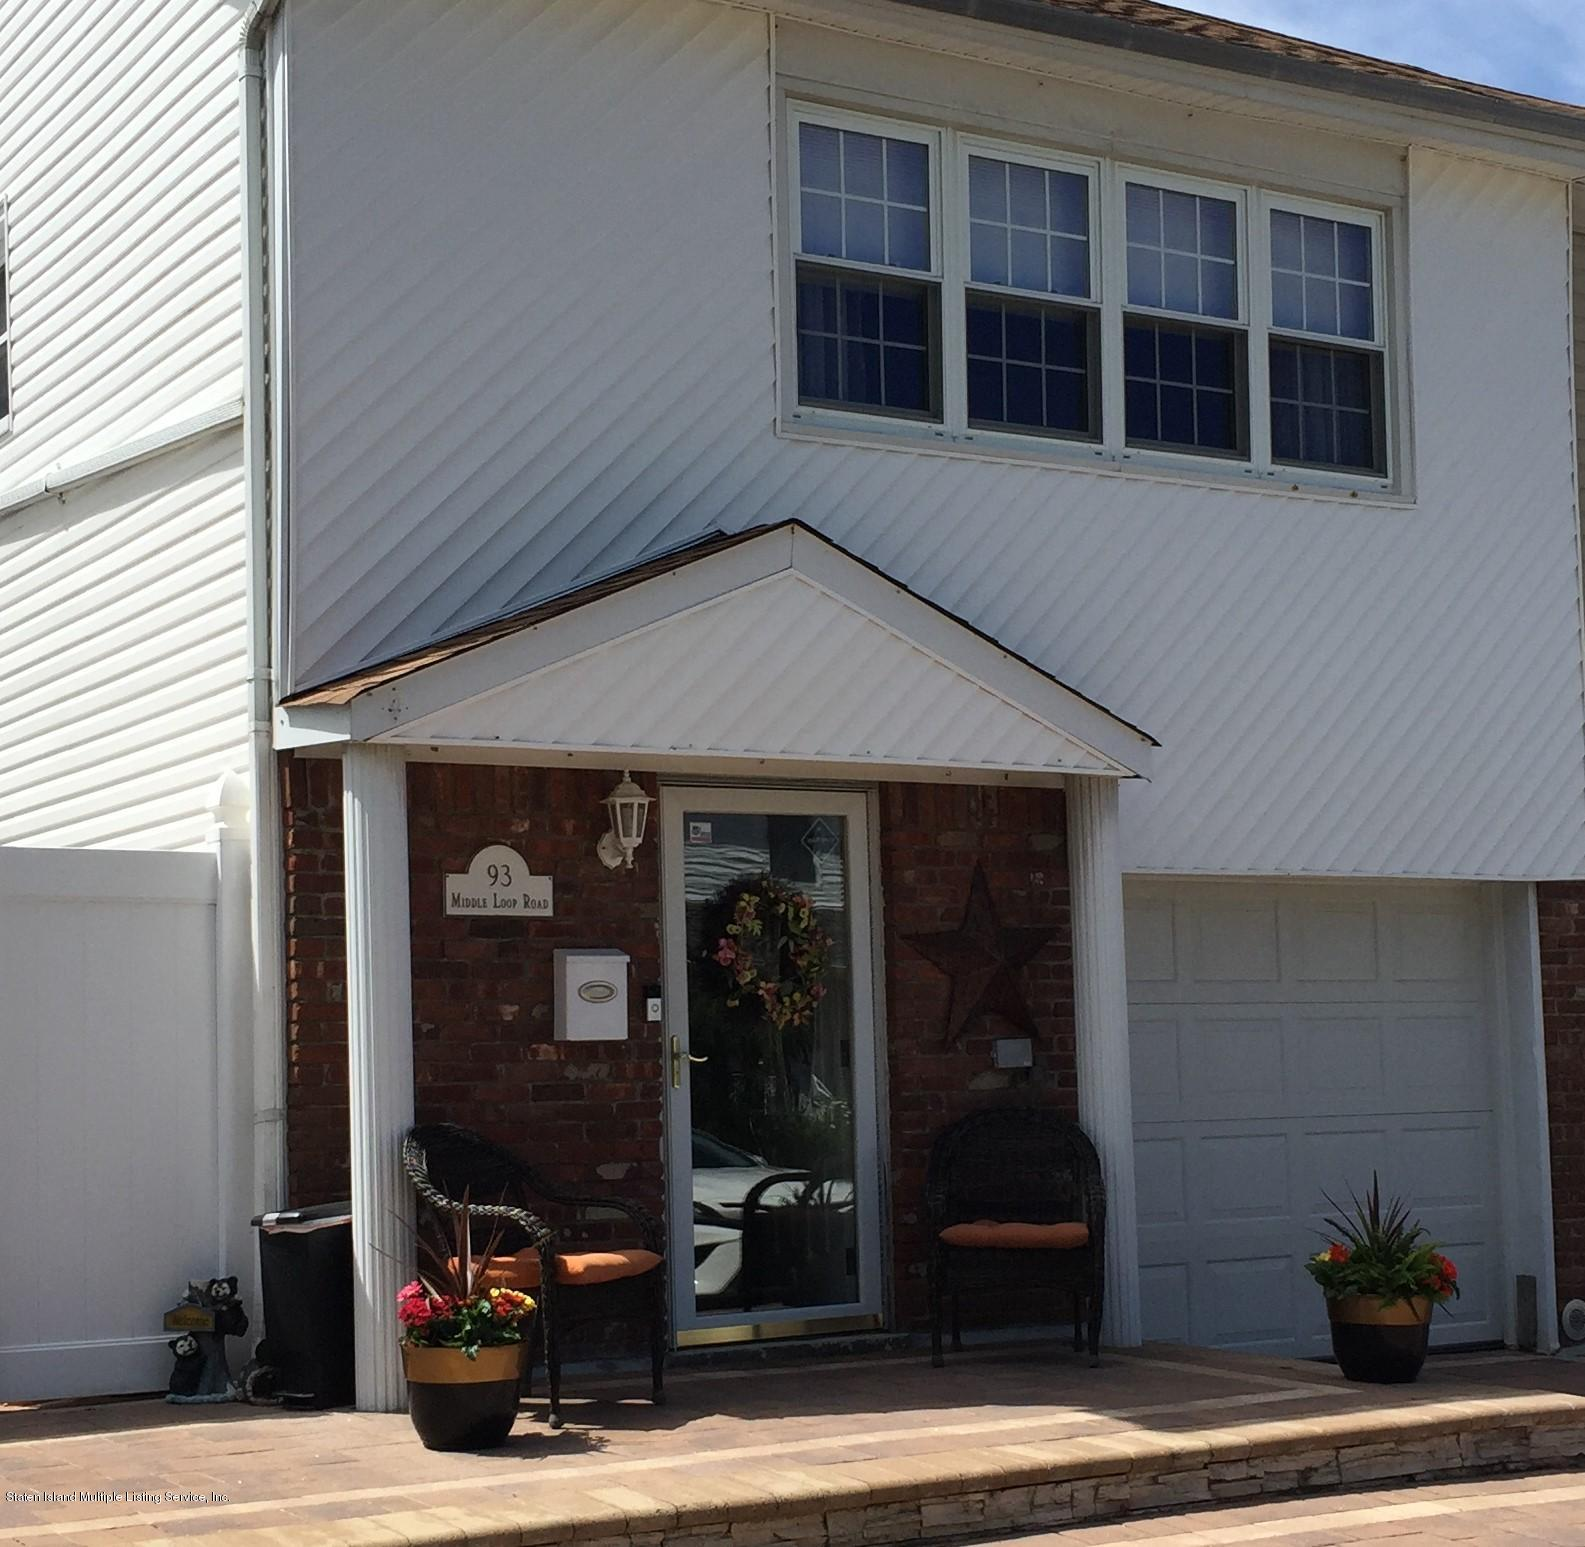 Single Family - Semi-Attached 93 Middle Loop Road  Staten Island, NY 10308, MLS-1131446-25